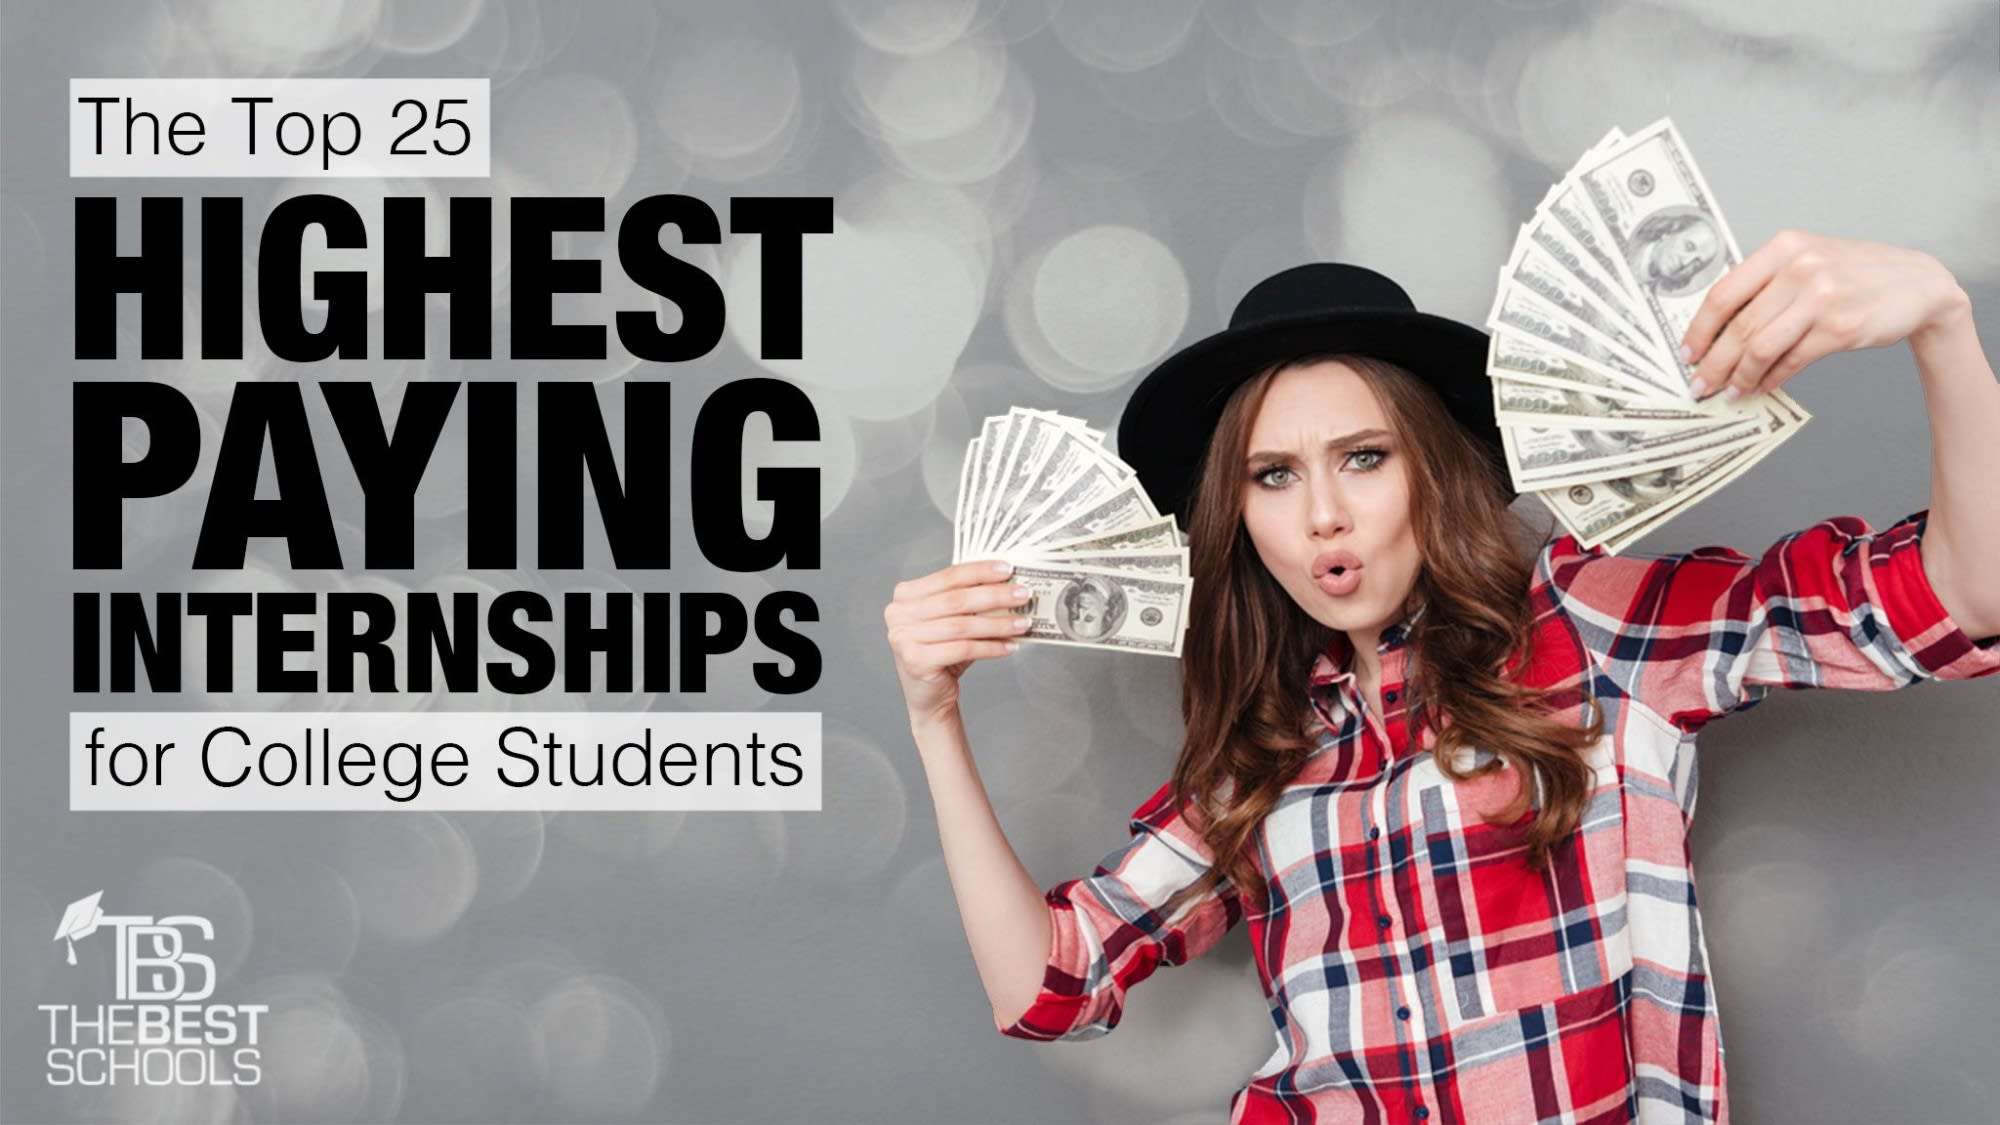 The Top 25 Highest Paying Internships for College Students | The